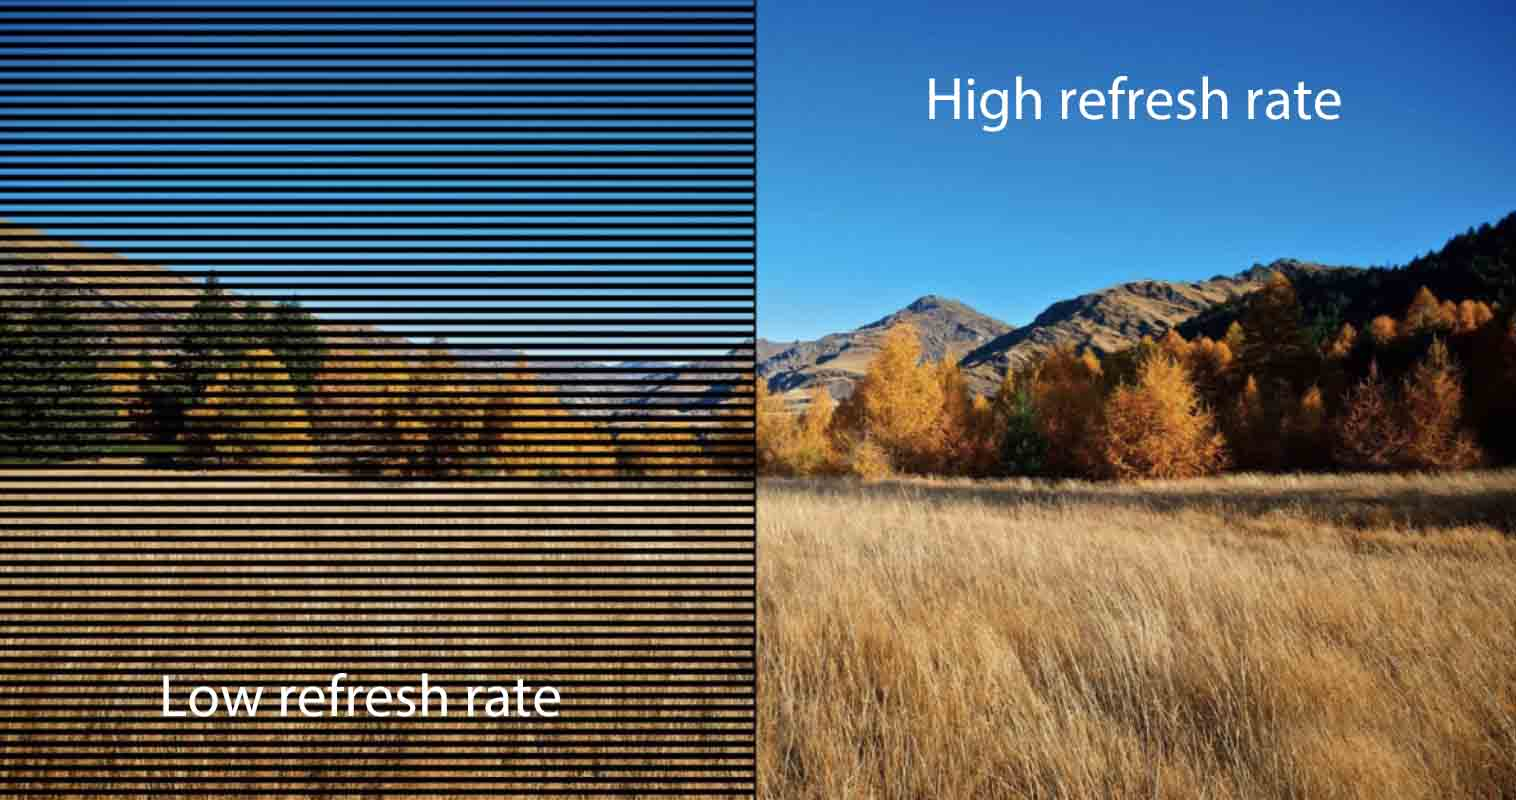 Do we need a high refresh rate LED screen??? 1